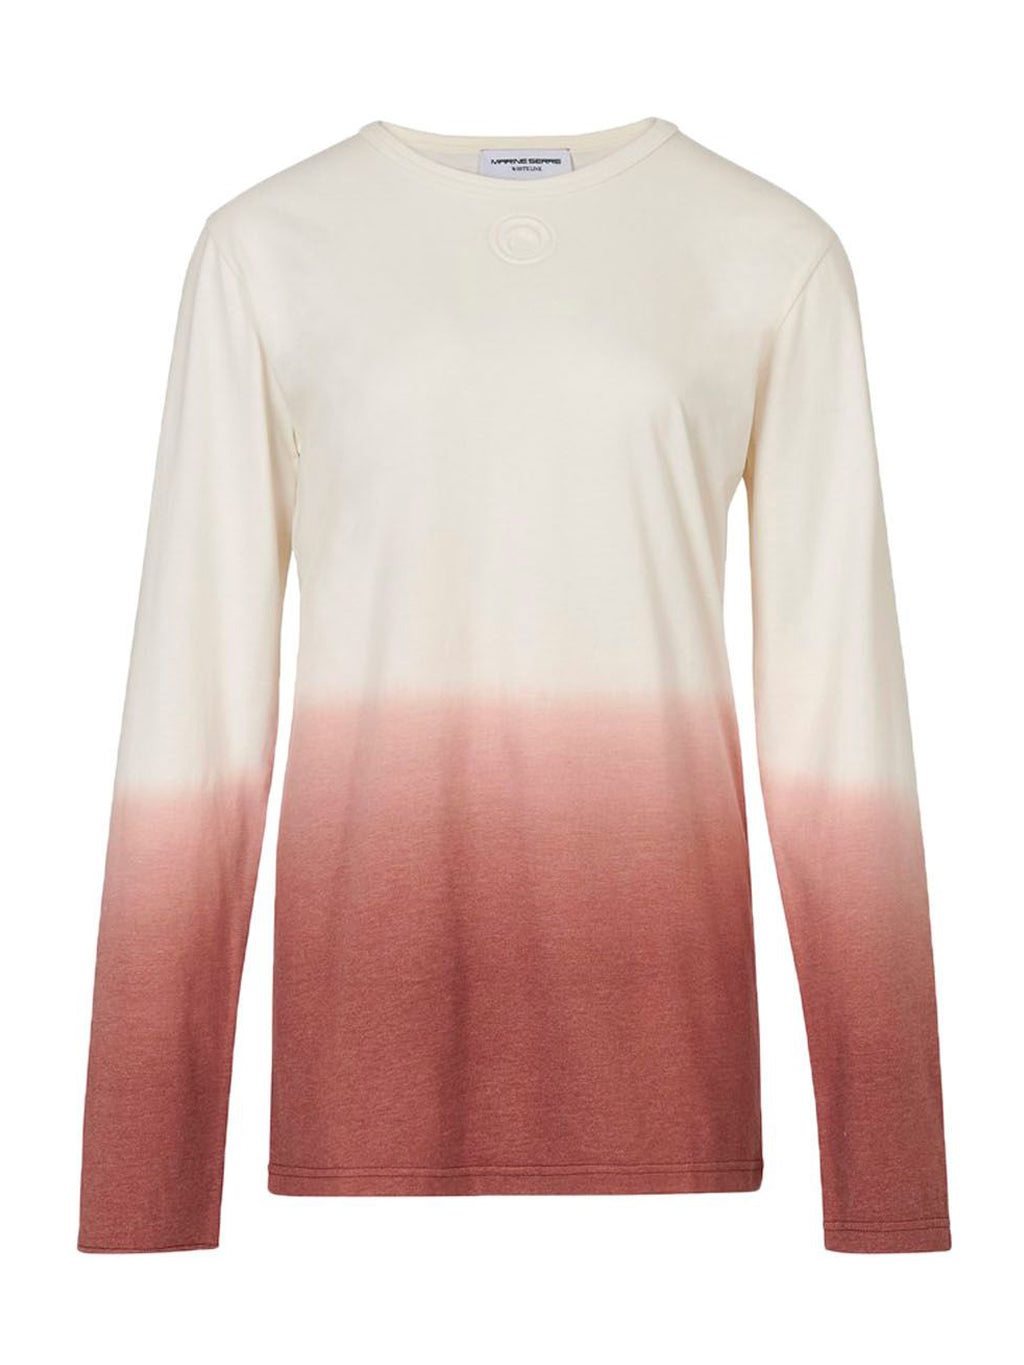 Ivory & Red Cotton Long Sleeve Dip Dye T-Shirt